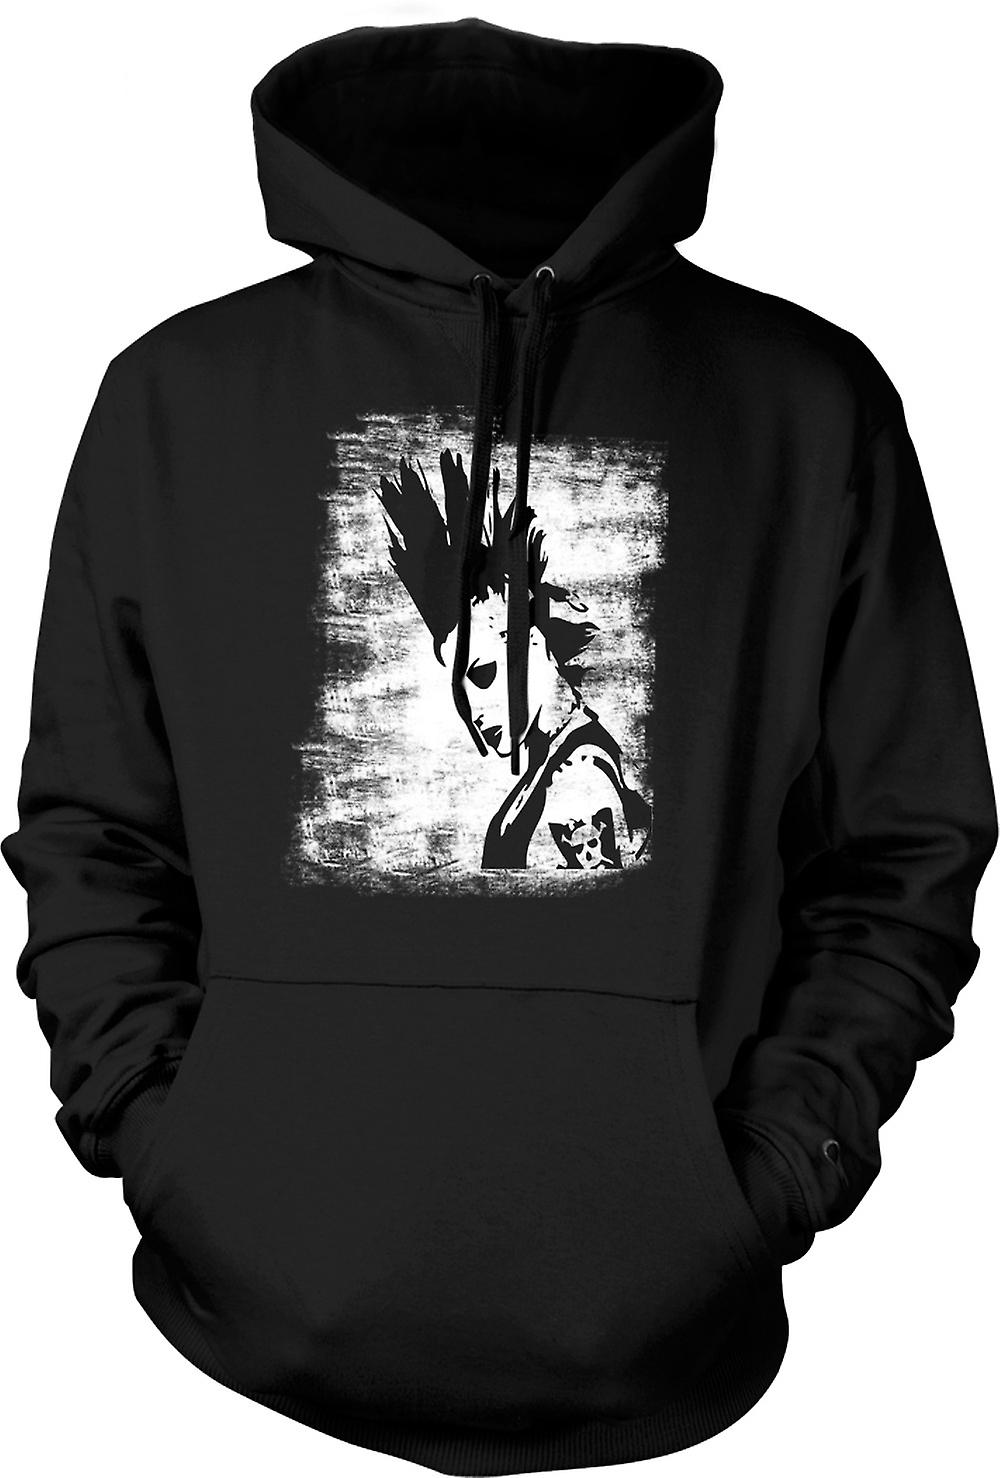 Kinder Hoodie - Punk-Rocker Mohican Girl - BW - Pop-Art